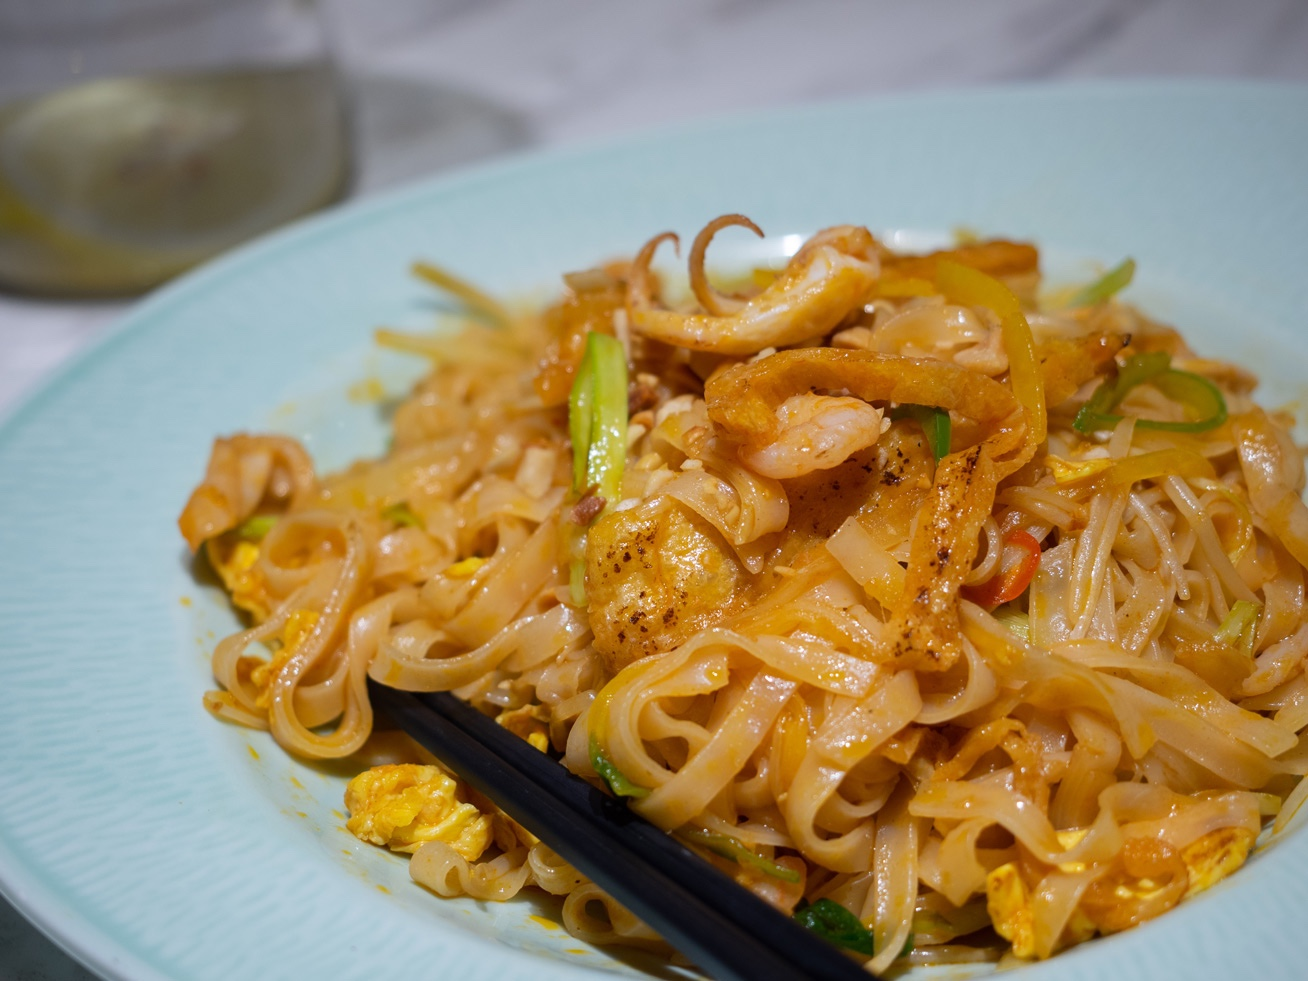 xingyuecheng-fried-noodles.jpg